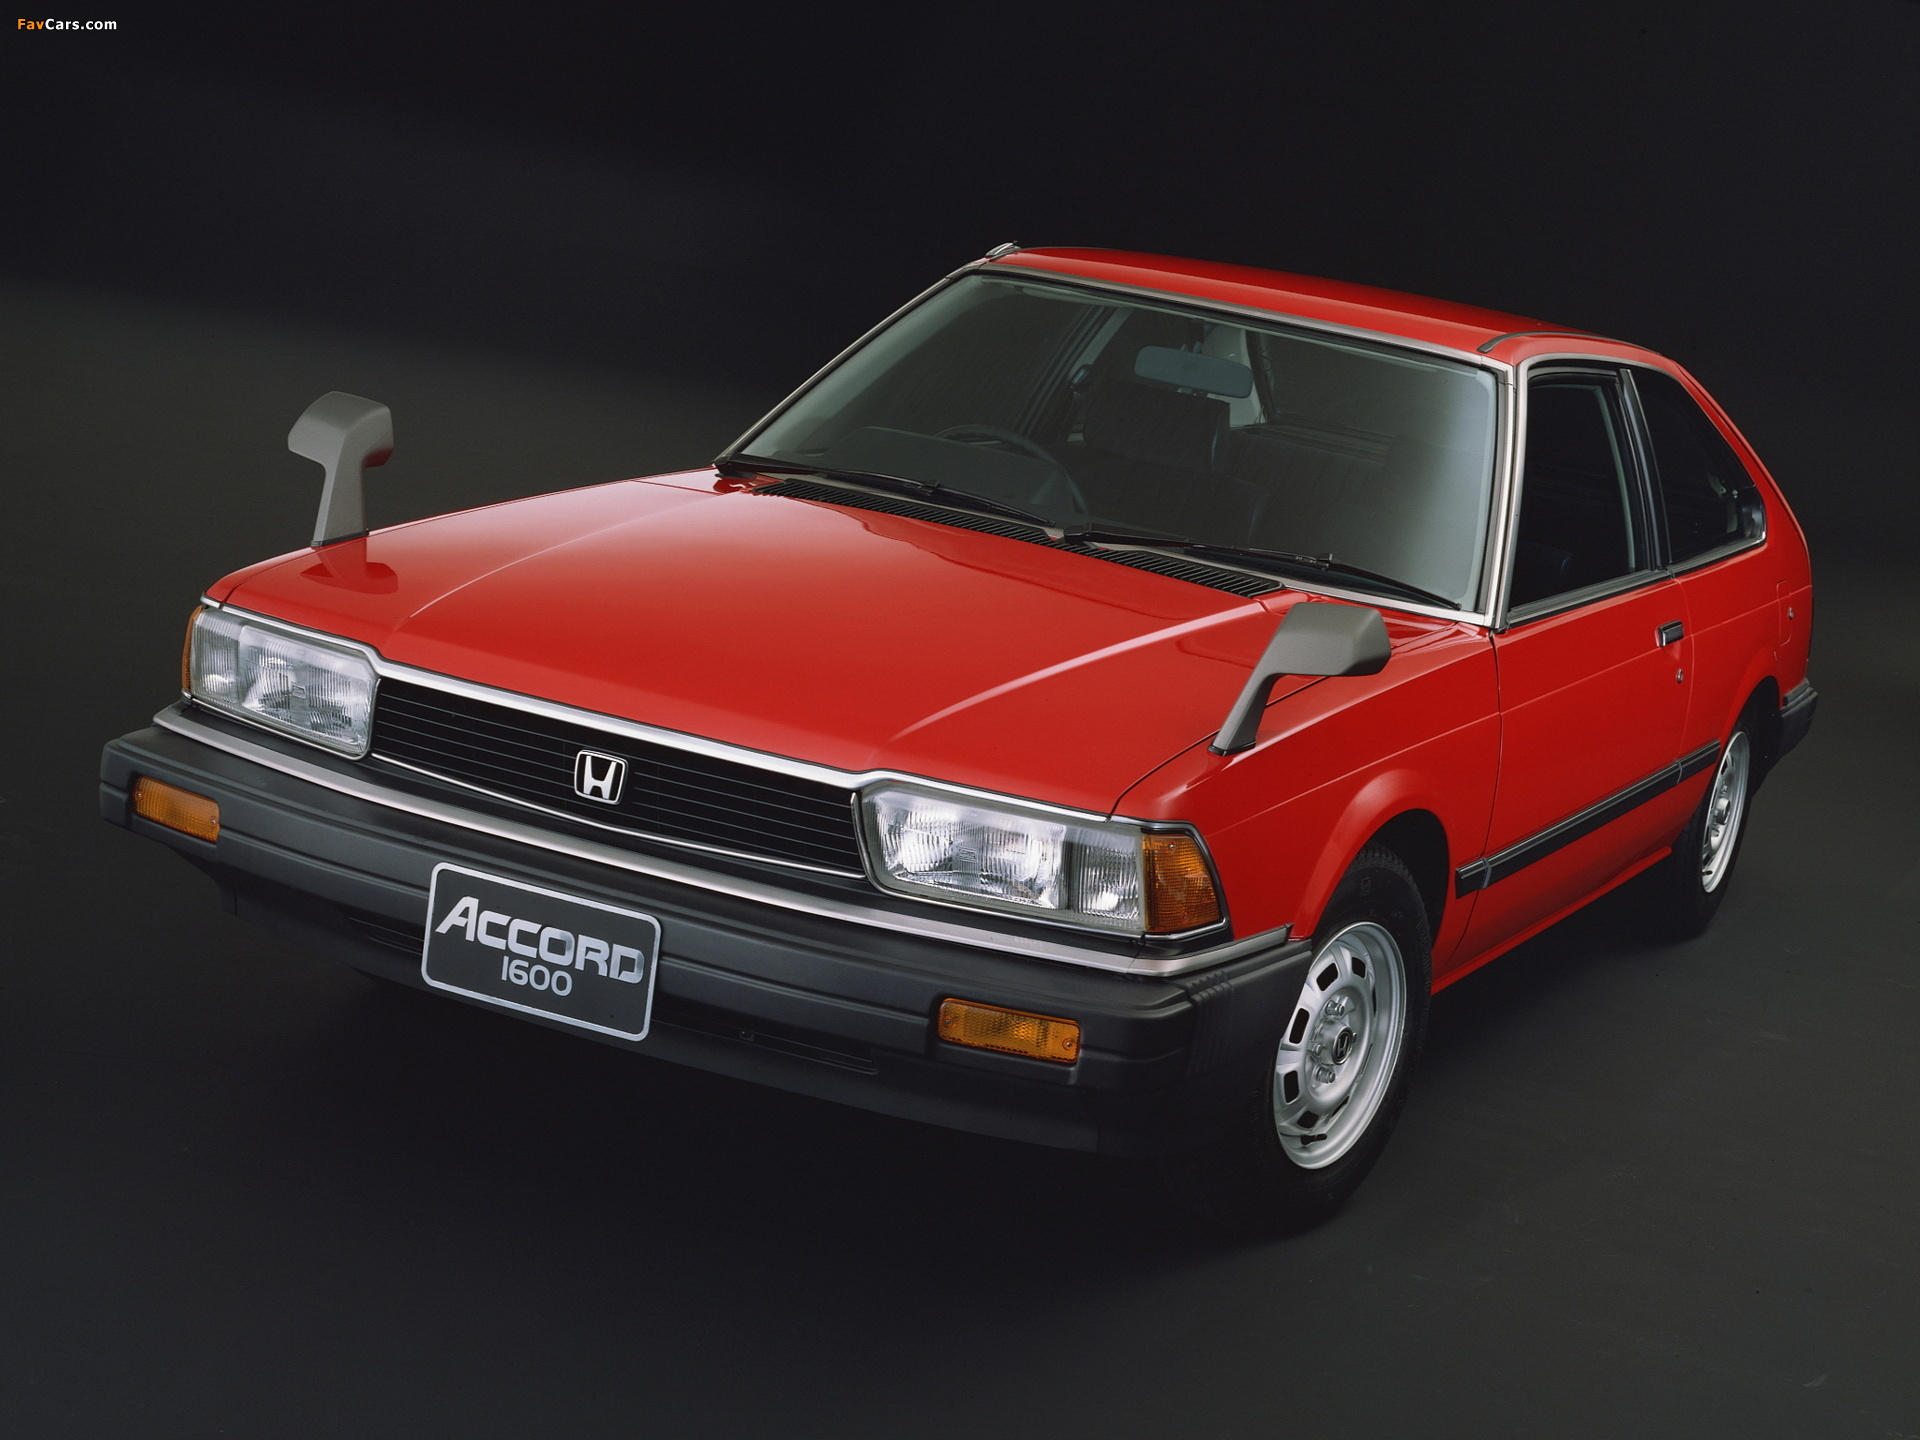 1981 Honda Accord Hatchback 1600 EX related infomation,specifications - WeiLi Automotive Network